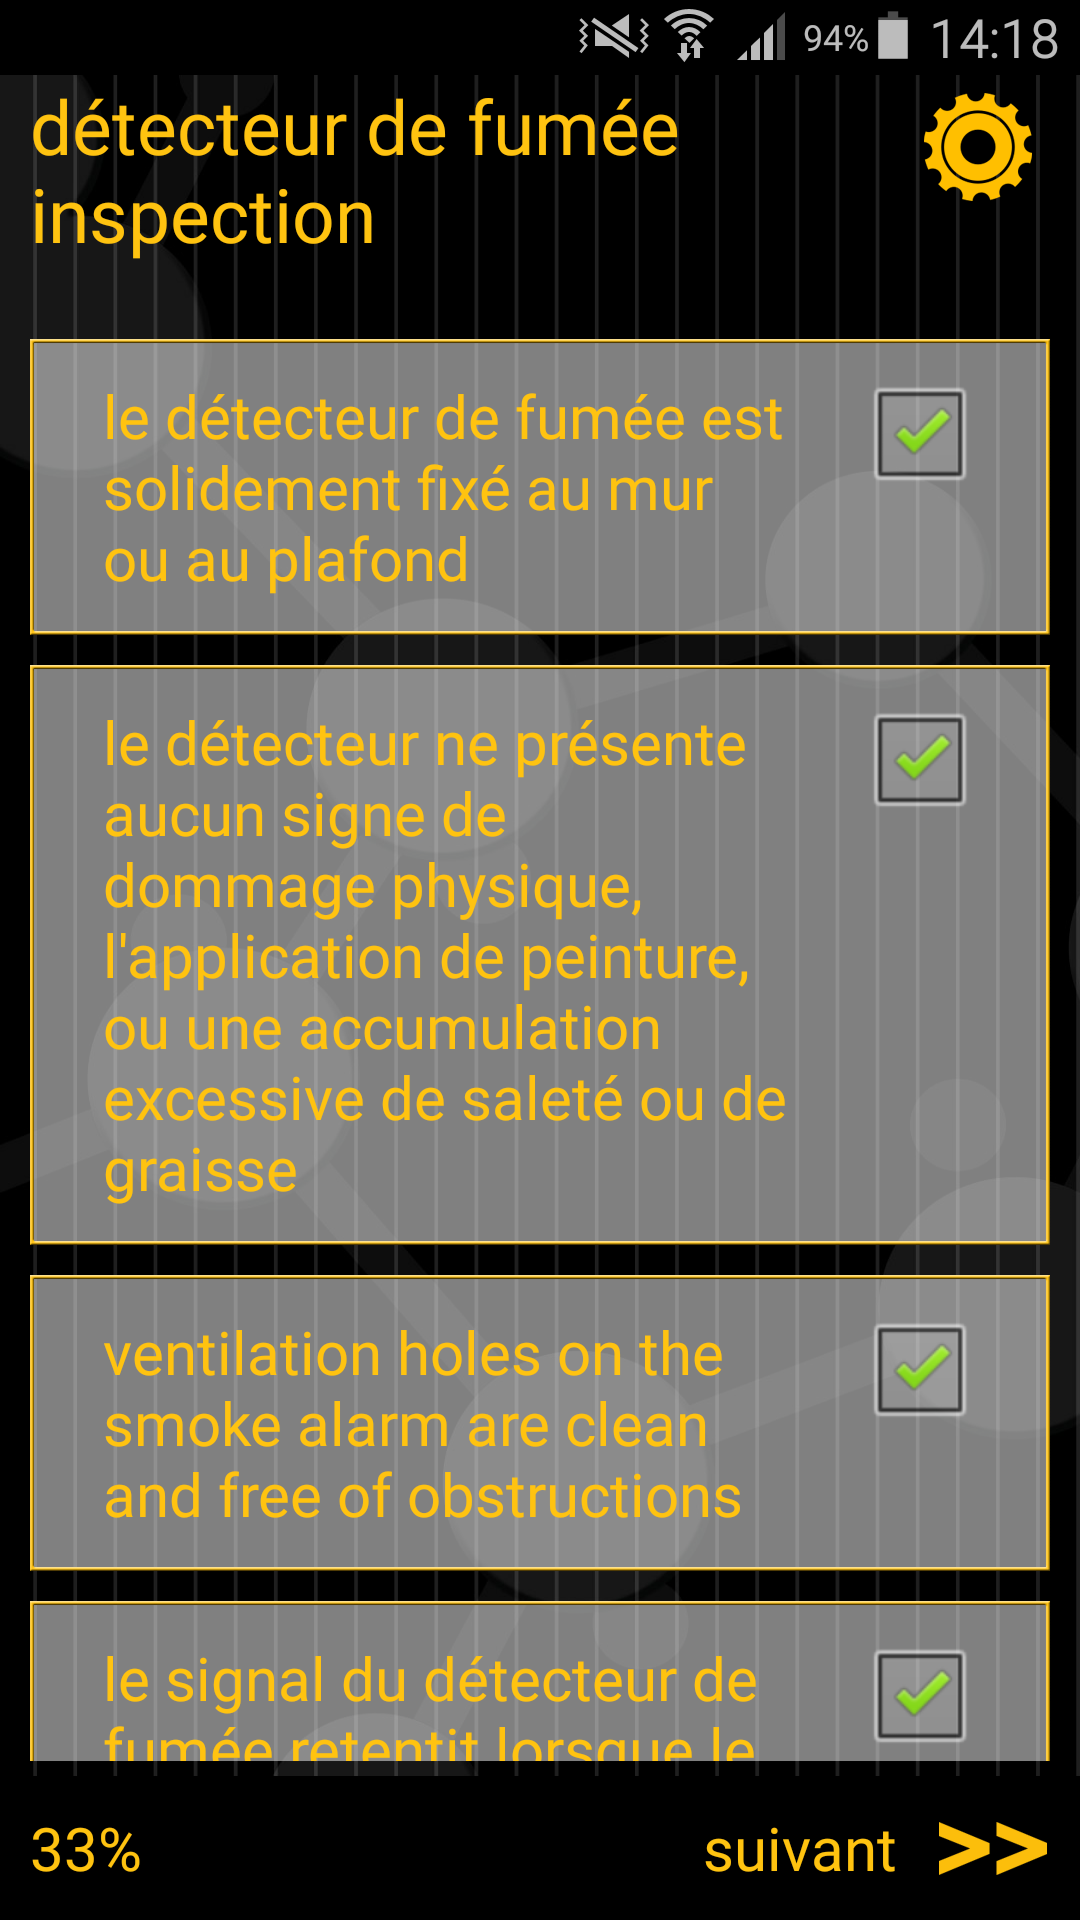 ginstr_app_smokeDetectorInspection_FR_4